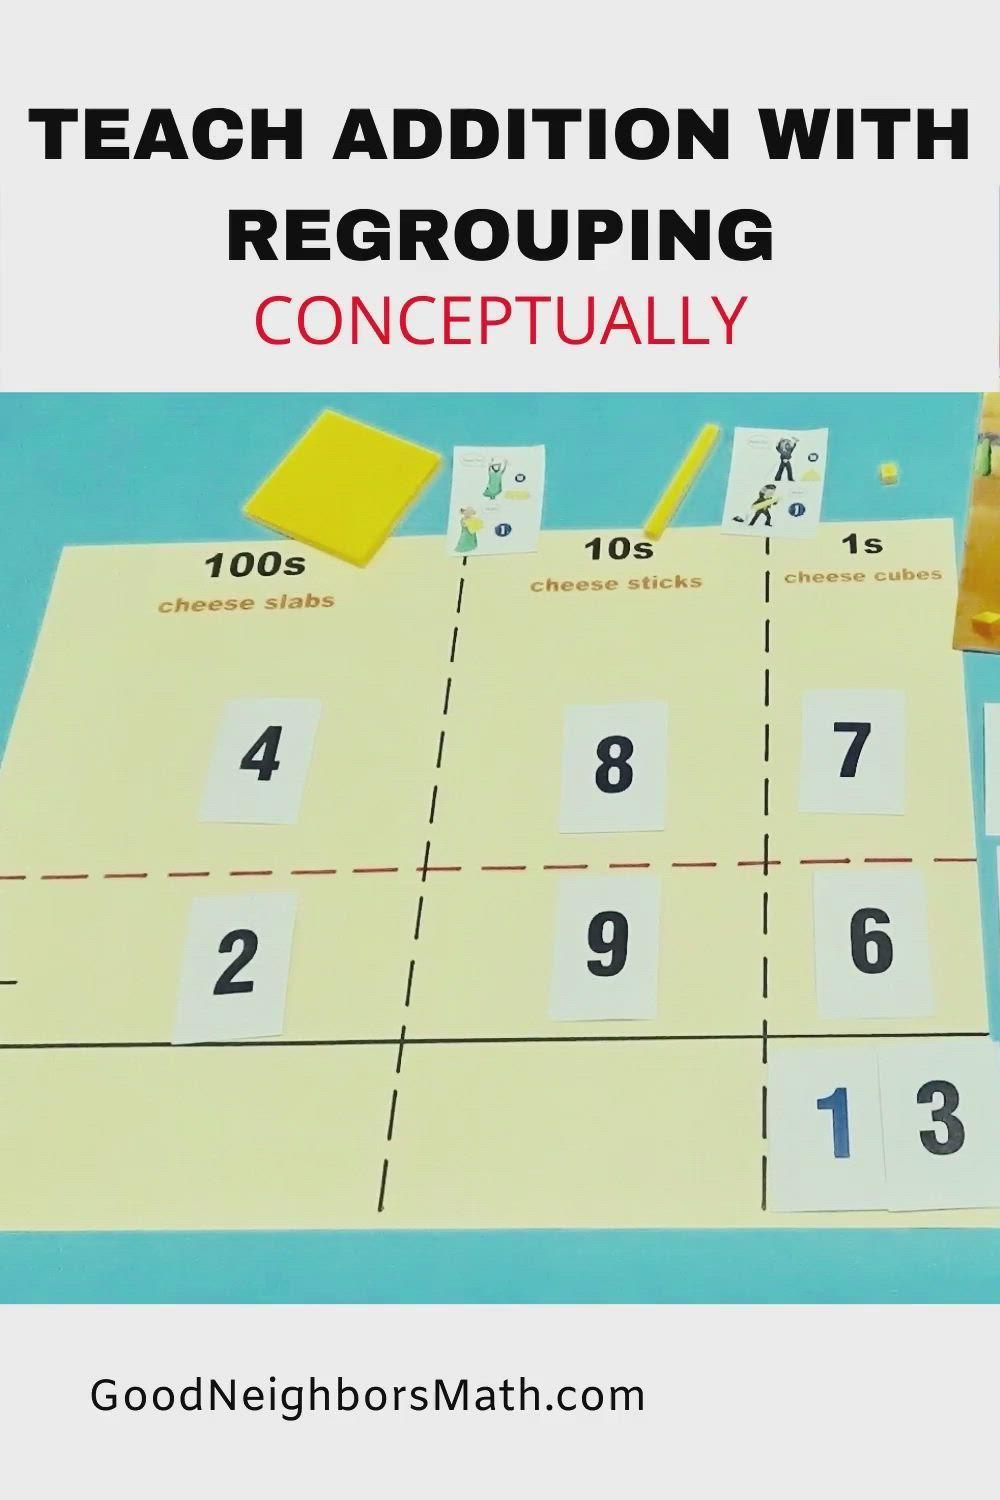 Teach Addition With Regrouping Conceptually Video Teaching Teaching Elementary Visible Learning How to explain addition with regrouping